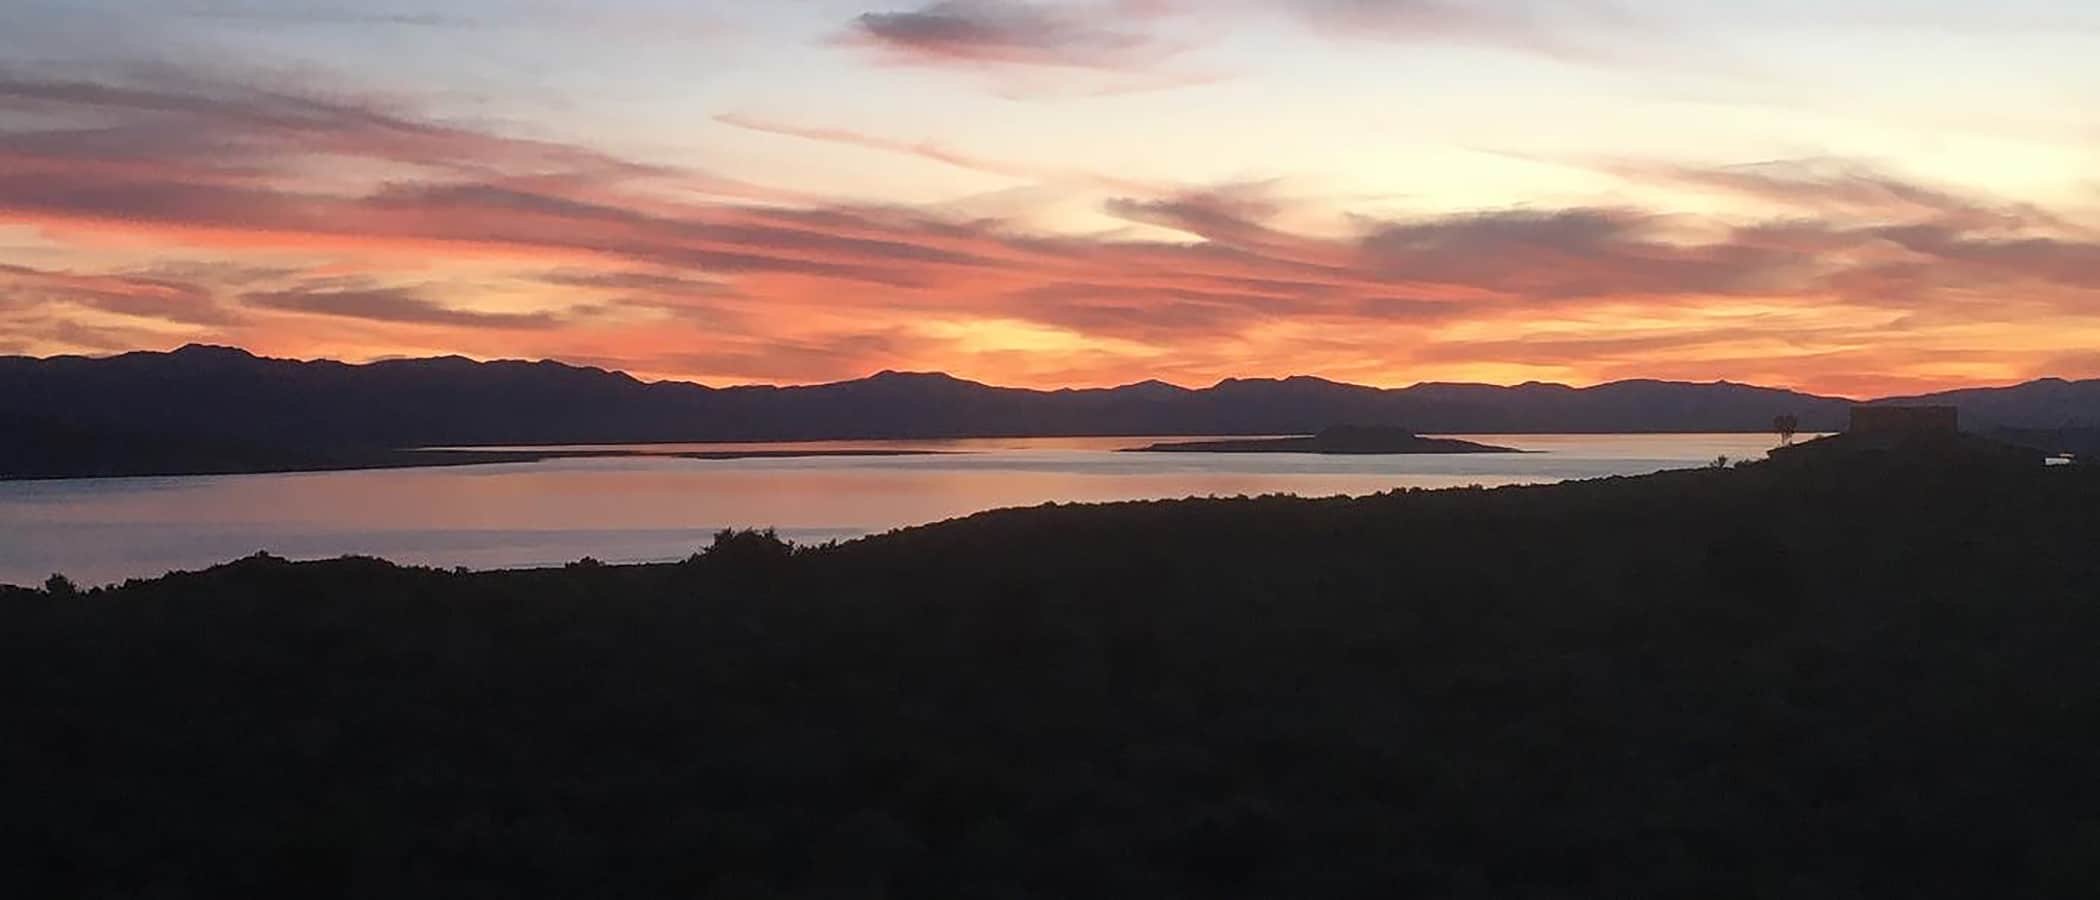 Coral pink and orange sunset stretches across the sky above silhouetted mountains and Mono Lake.